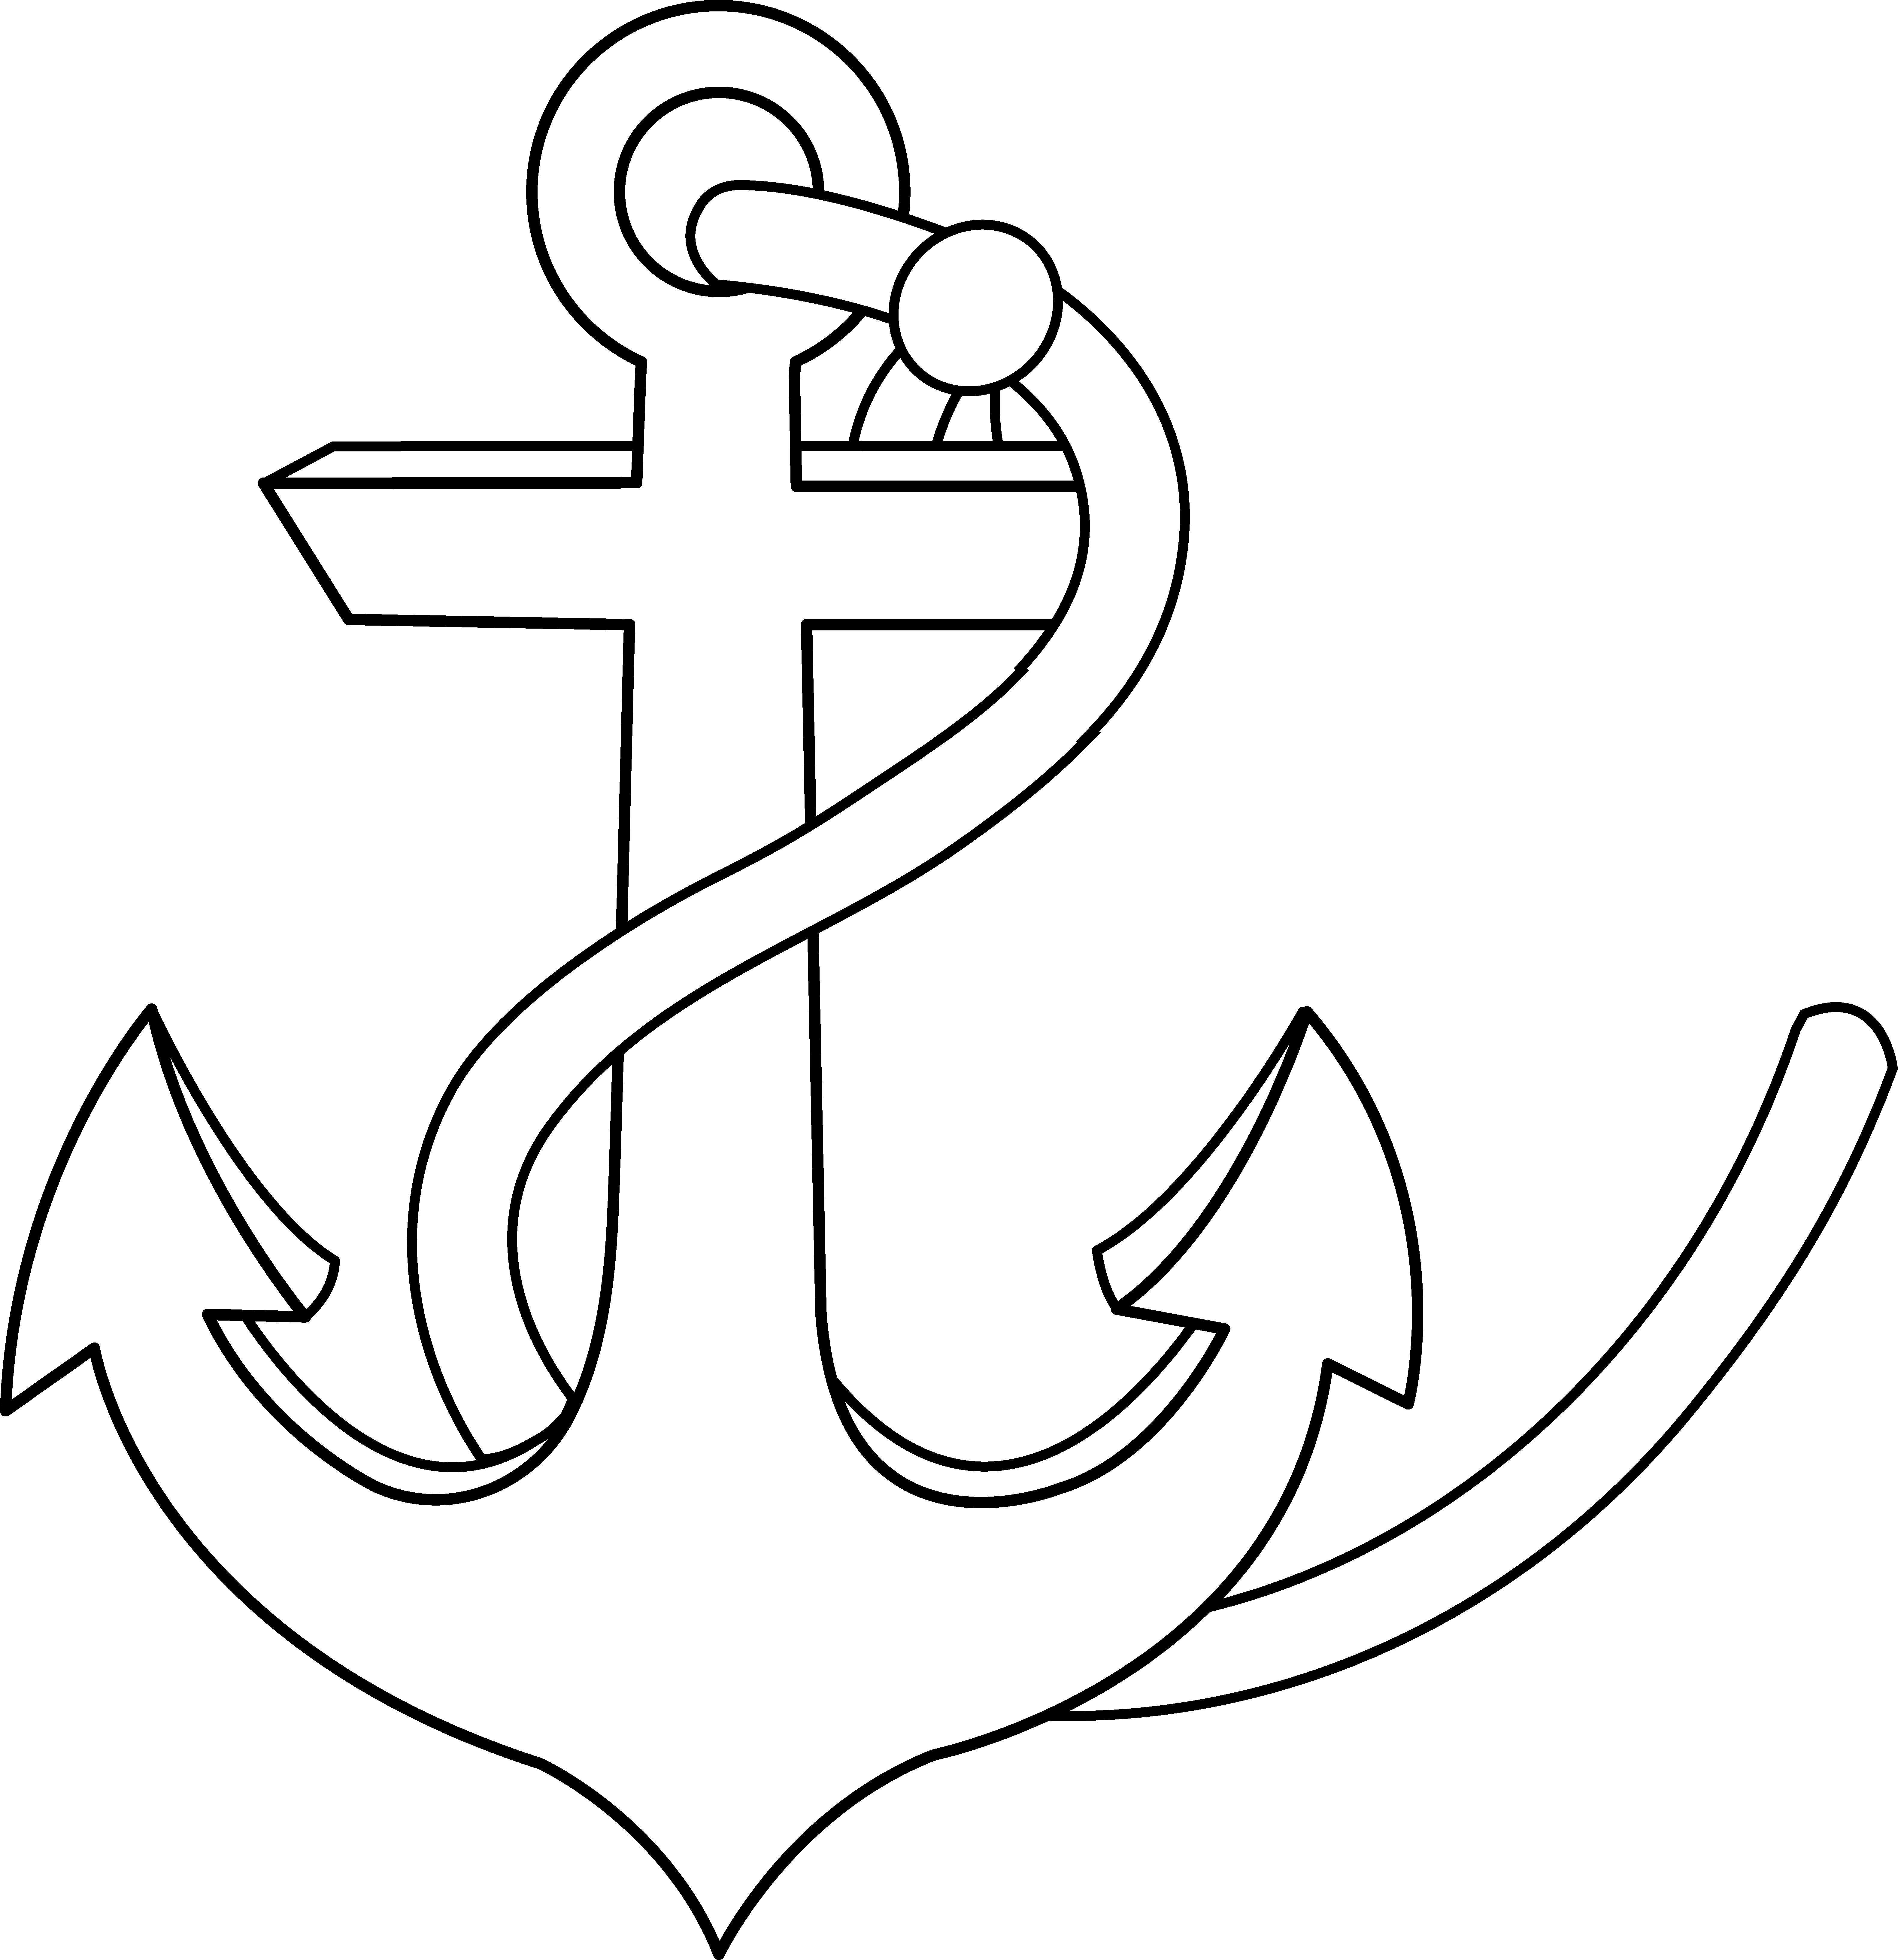 image freeuse download Anchor Clipart boat anchor